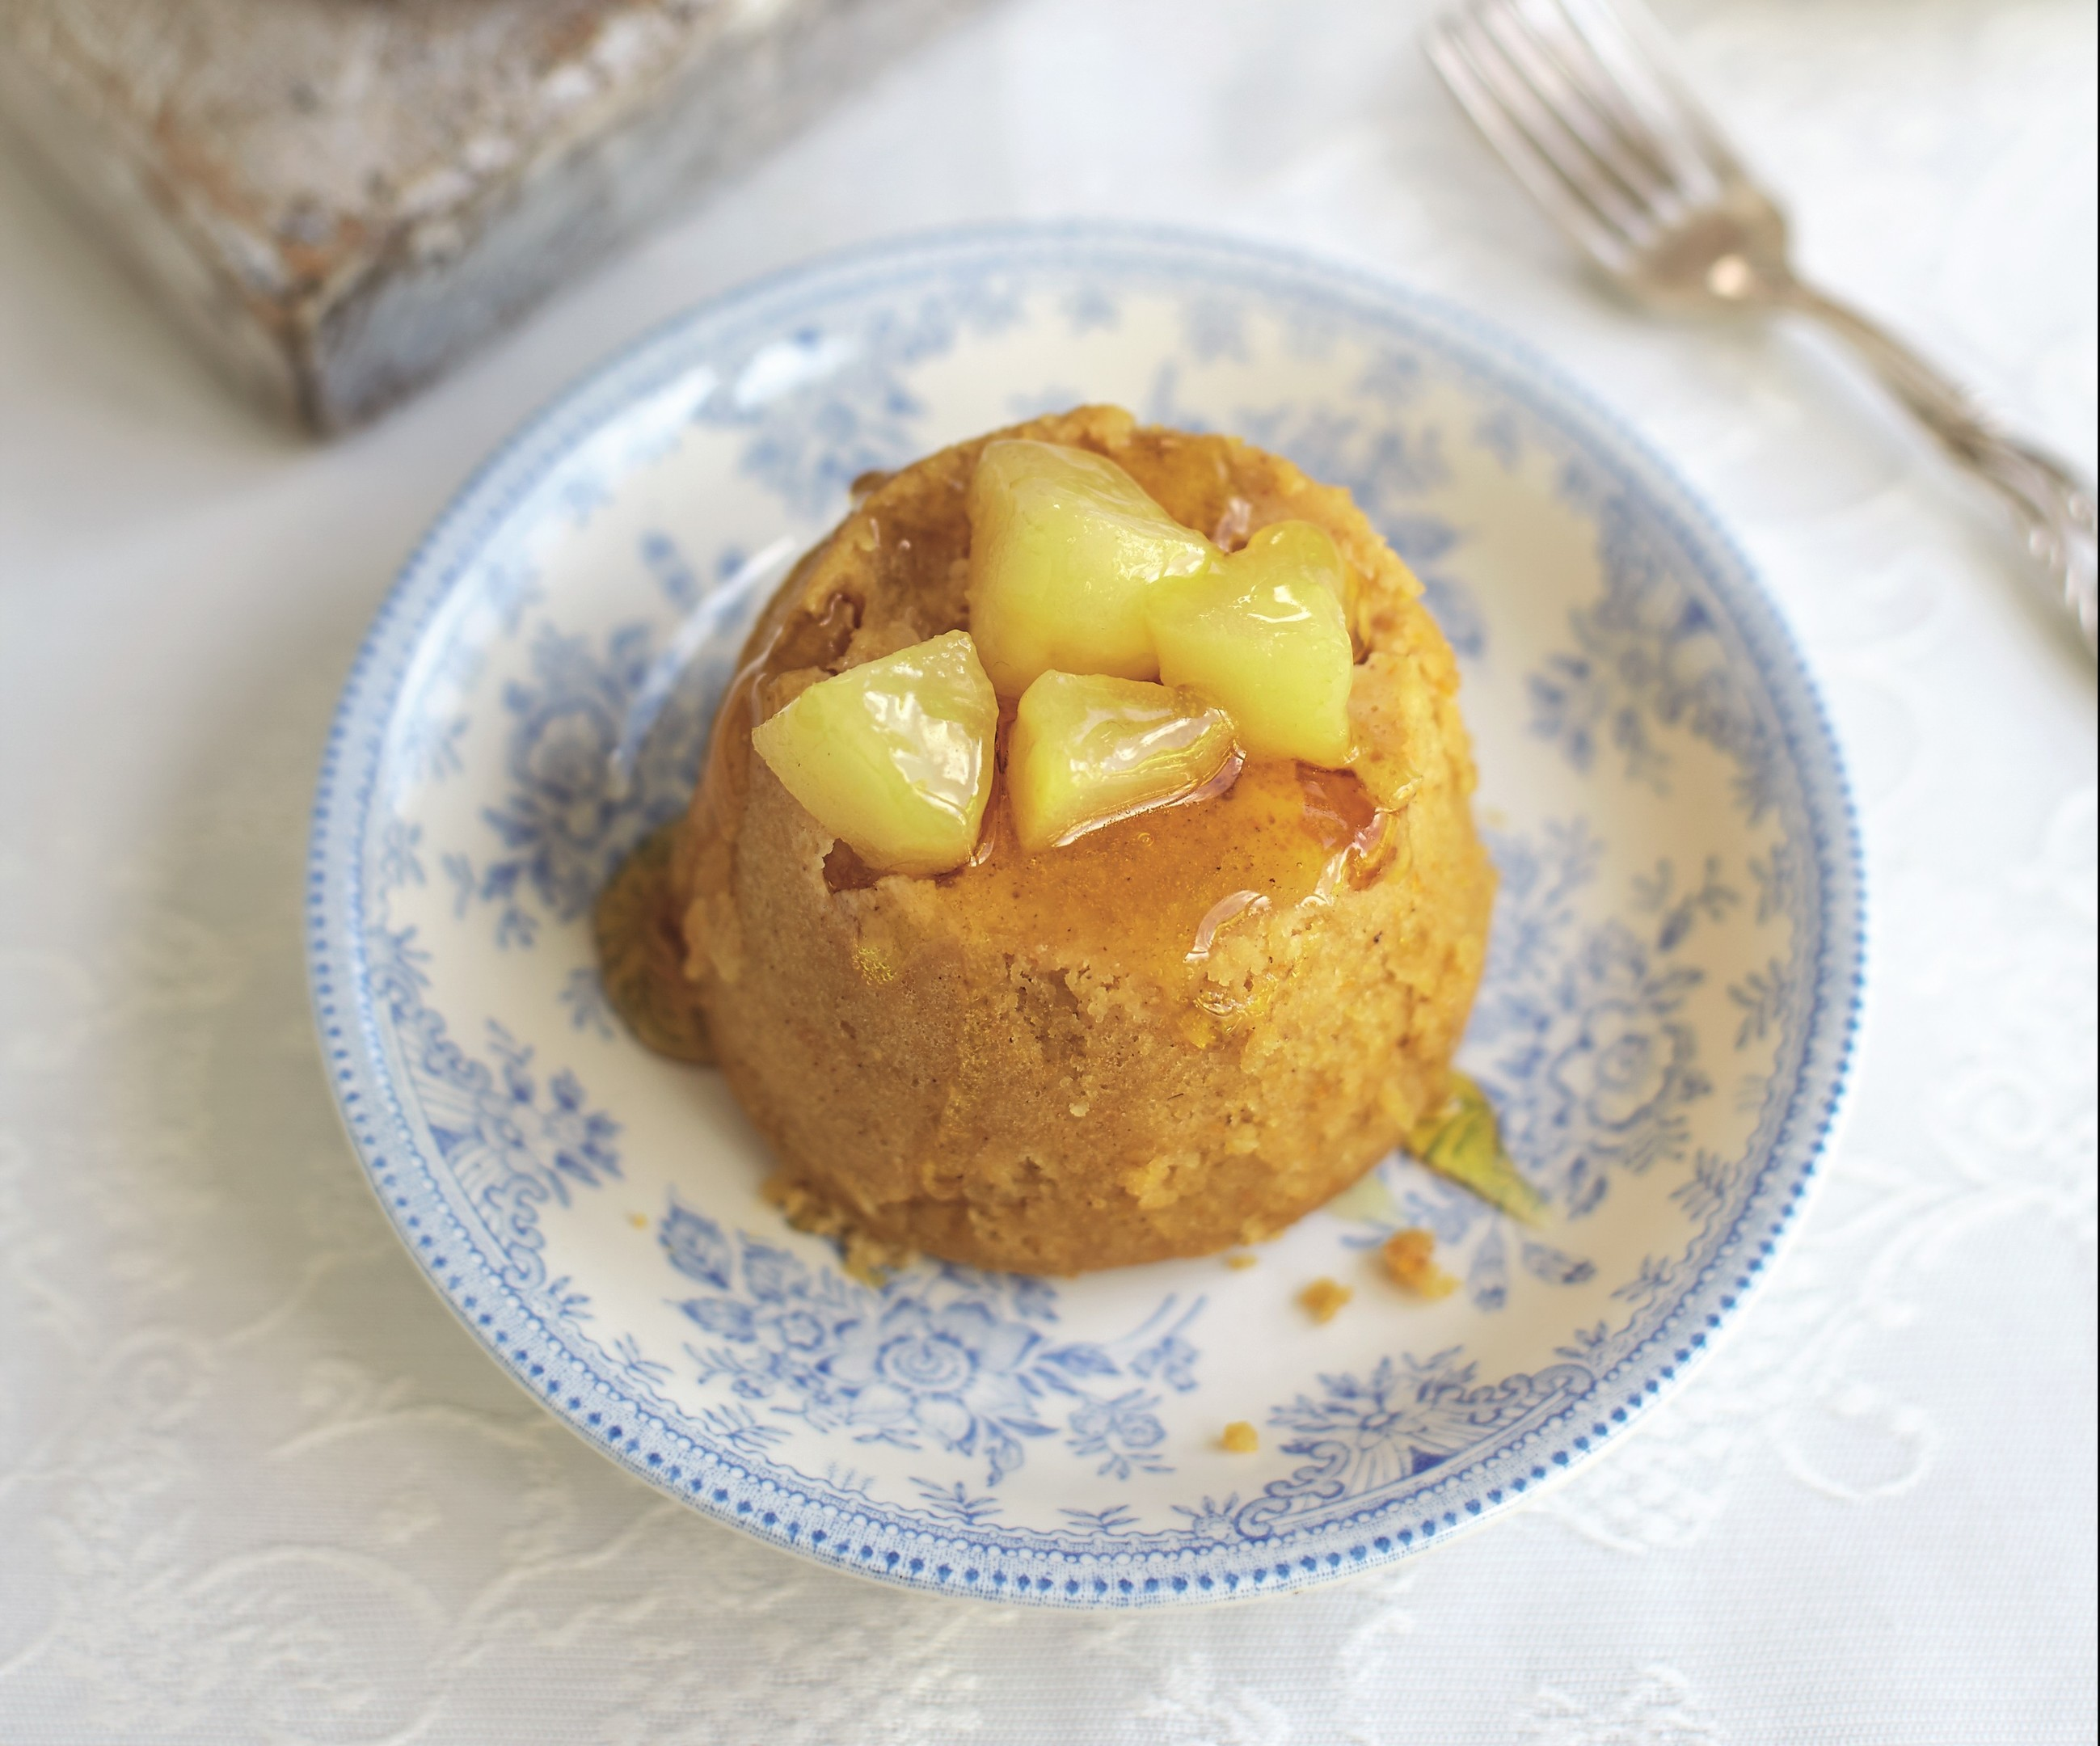 Upside-down pudding from the recipe book Puddings, by Johnny Shepherd